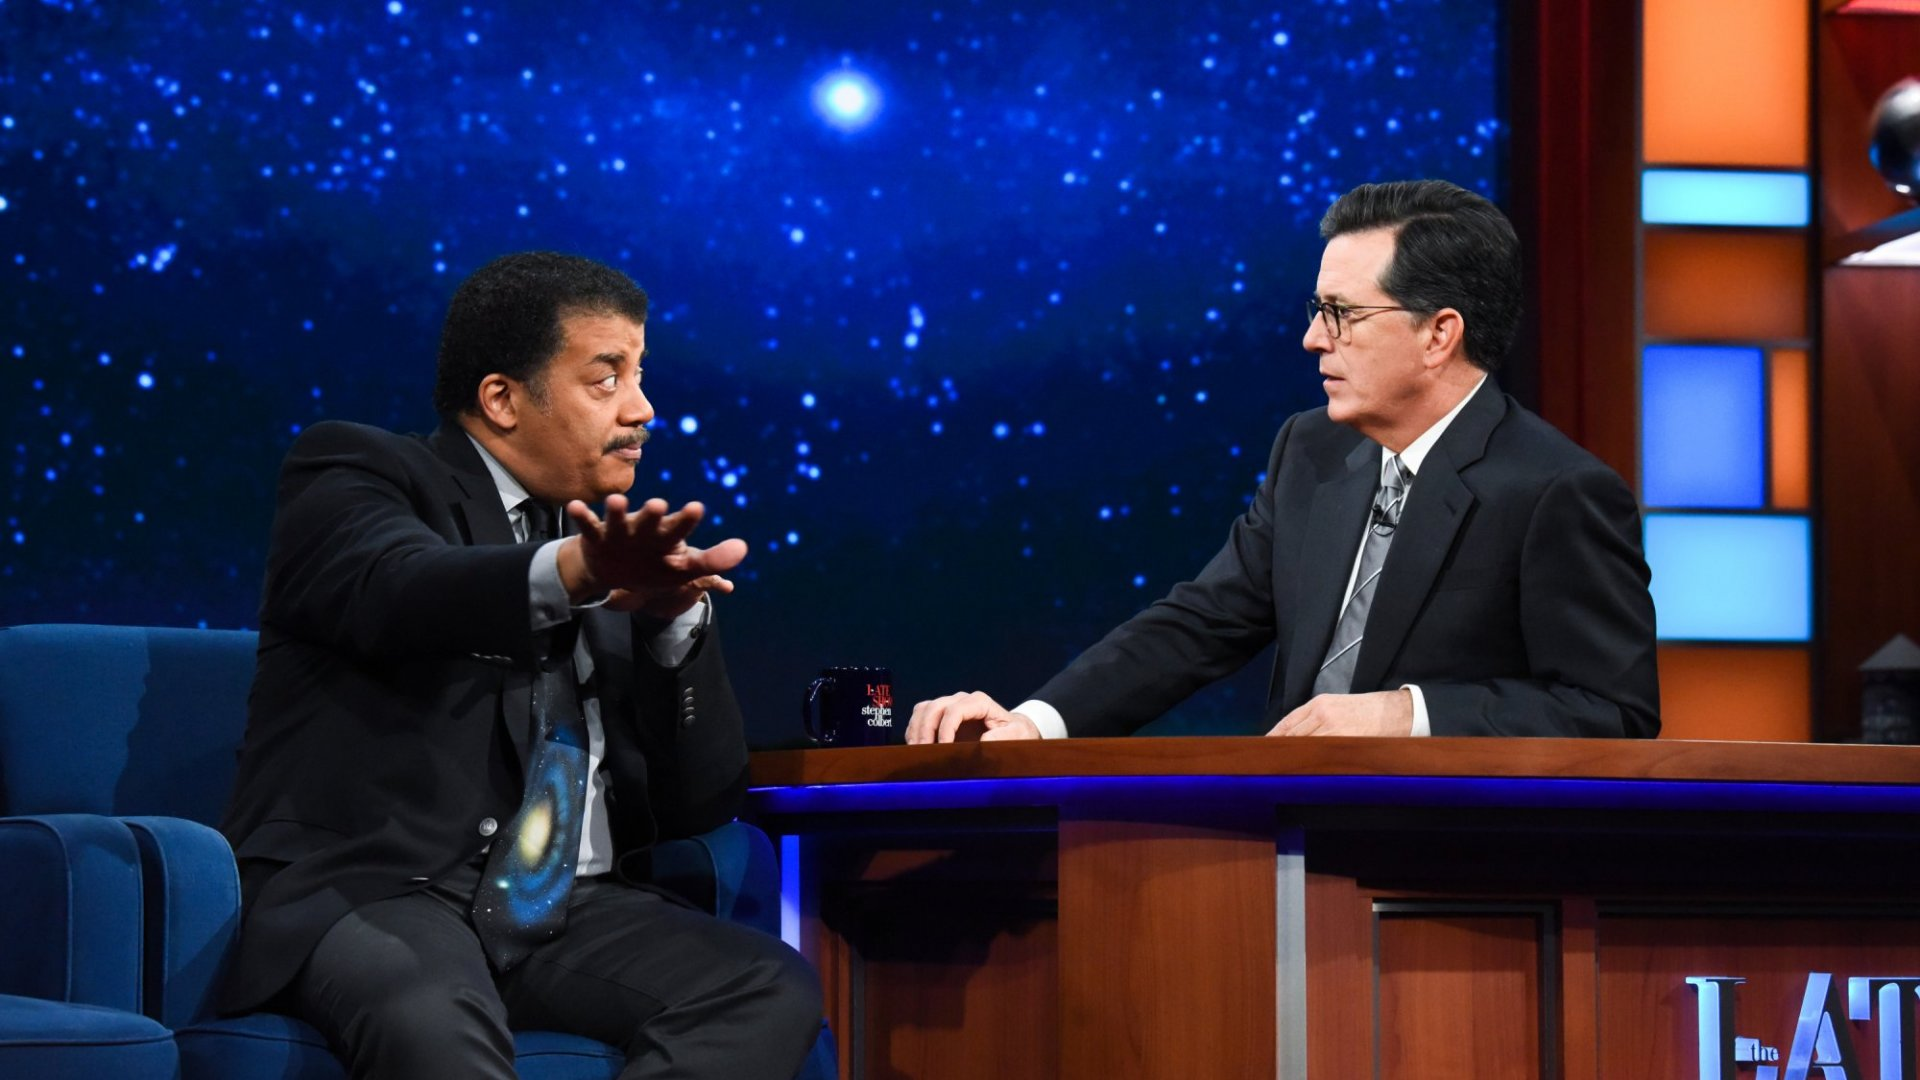 This 1 Communication Trick Helps Neil deGrasse Tyson Explain Astrophysics to Anyone